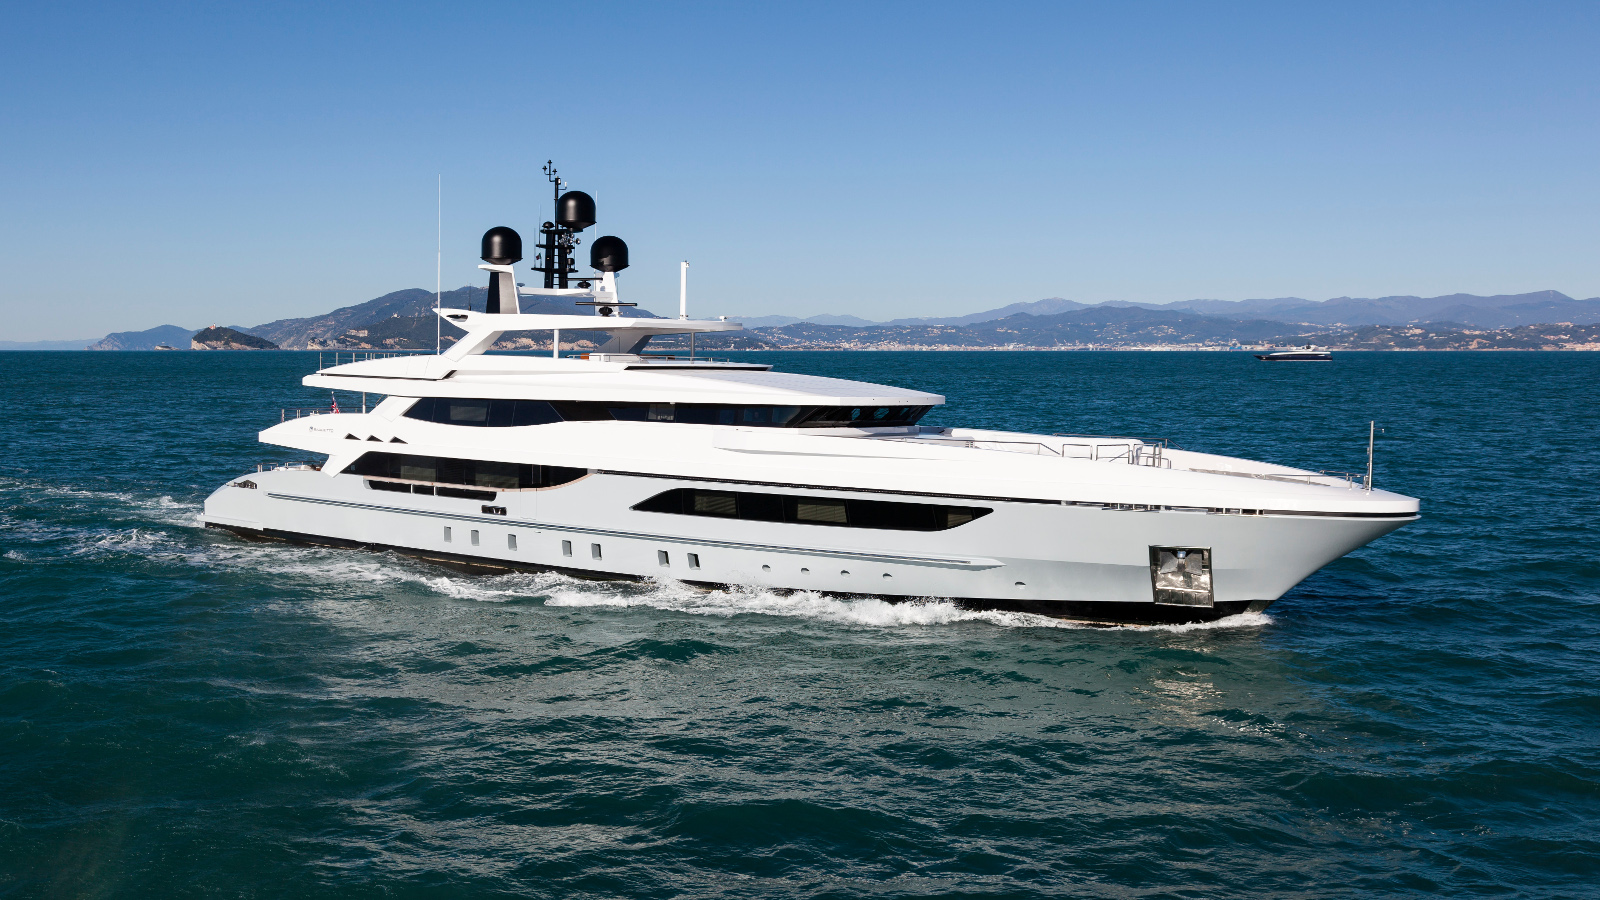 Baglietto, Bertram and CCN will shine together at this year's Versilia Yachting Rendez-vous